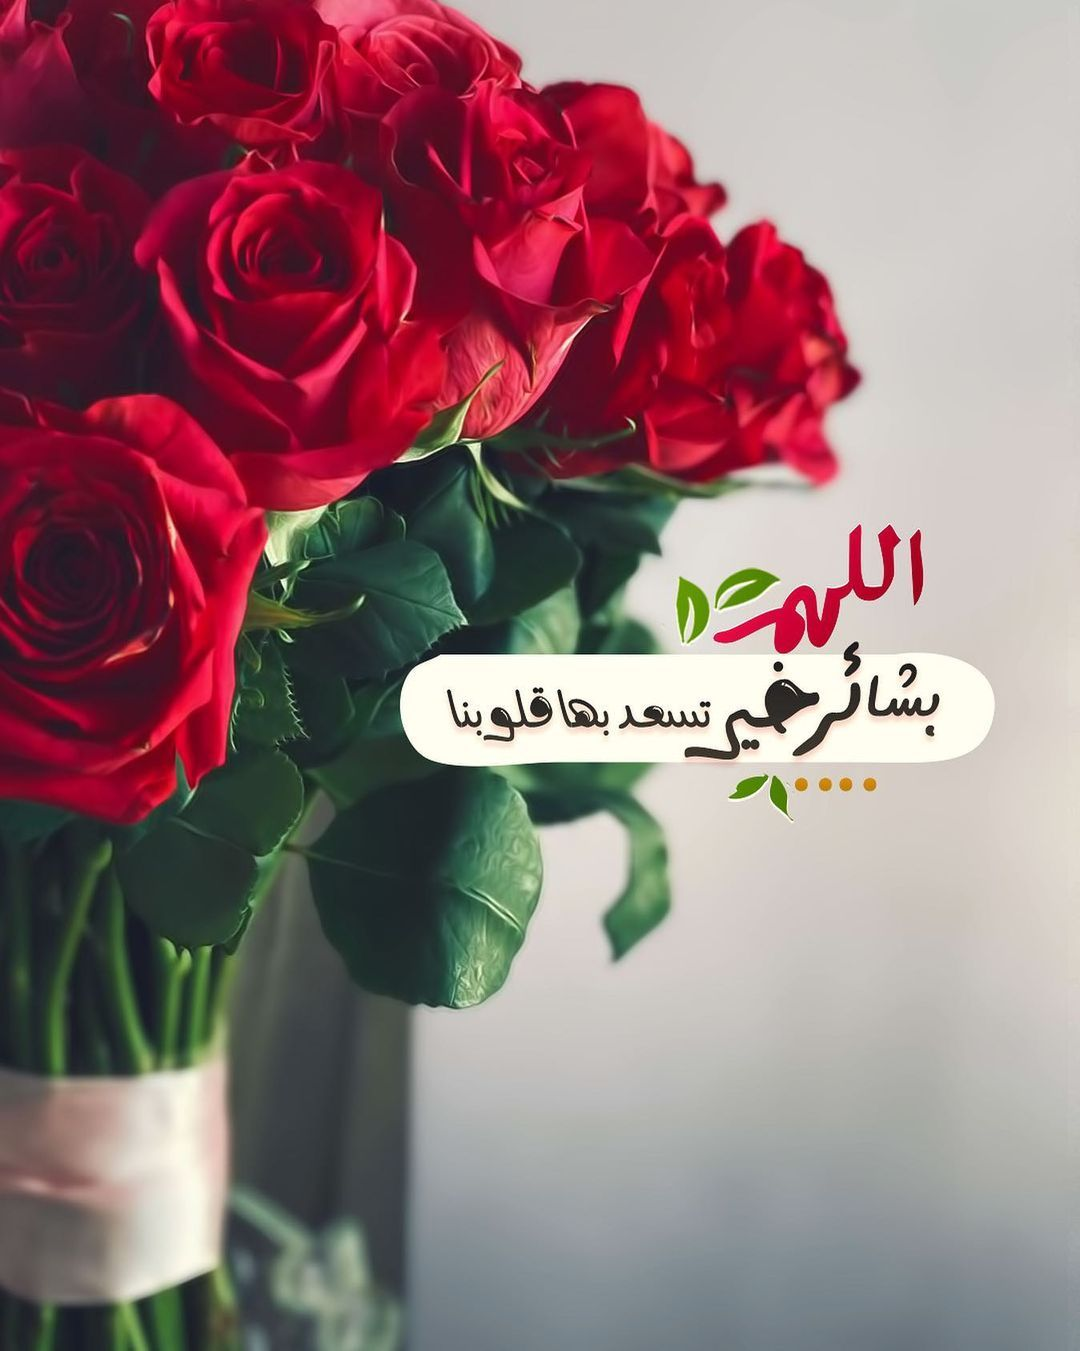 P E A R L A On Instagram الله م ب شائر خ ير ت سعد بها ق لوبنا ㅤㅤ ㅤㅤ ㅤㅤ صباحكم ب شائر خ ير In 2021 Good Morning Gif Islamic Pictures Cross Stitch Flowers